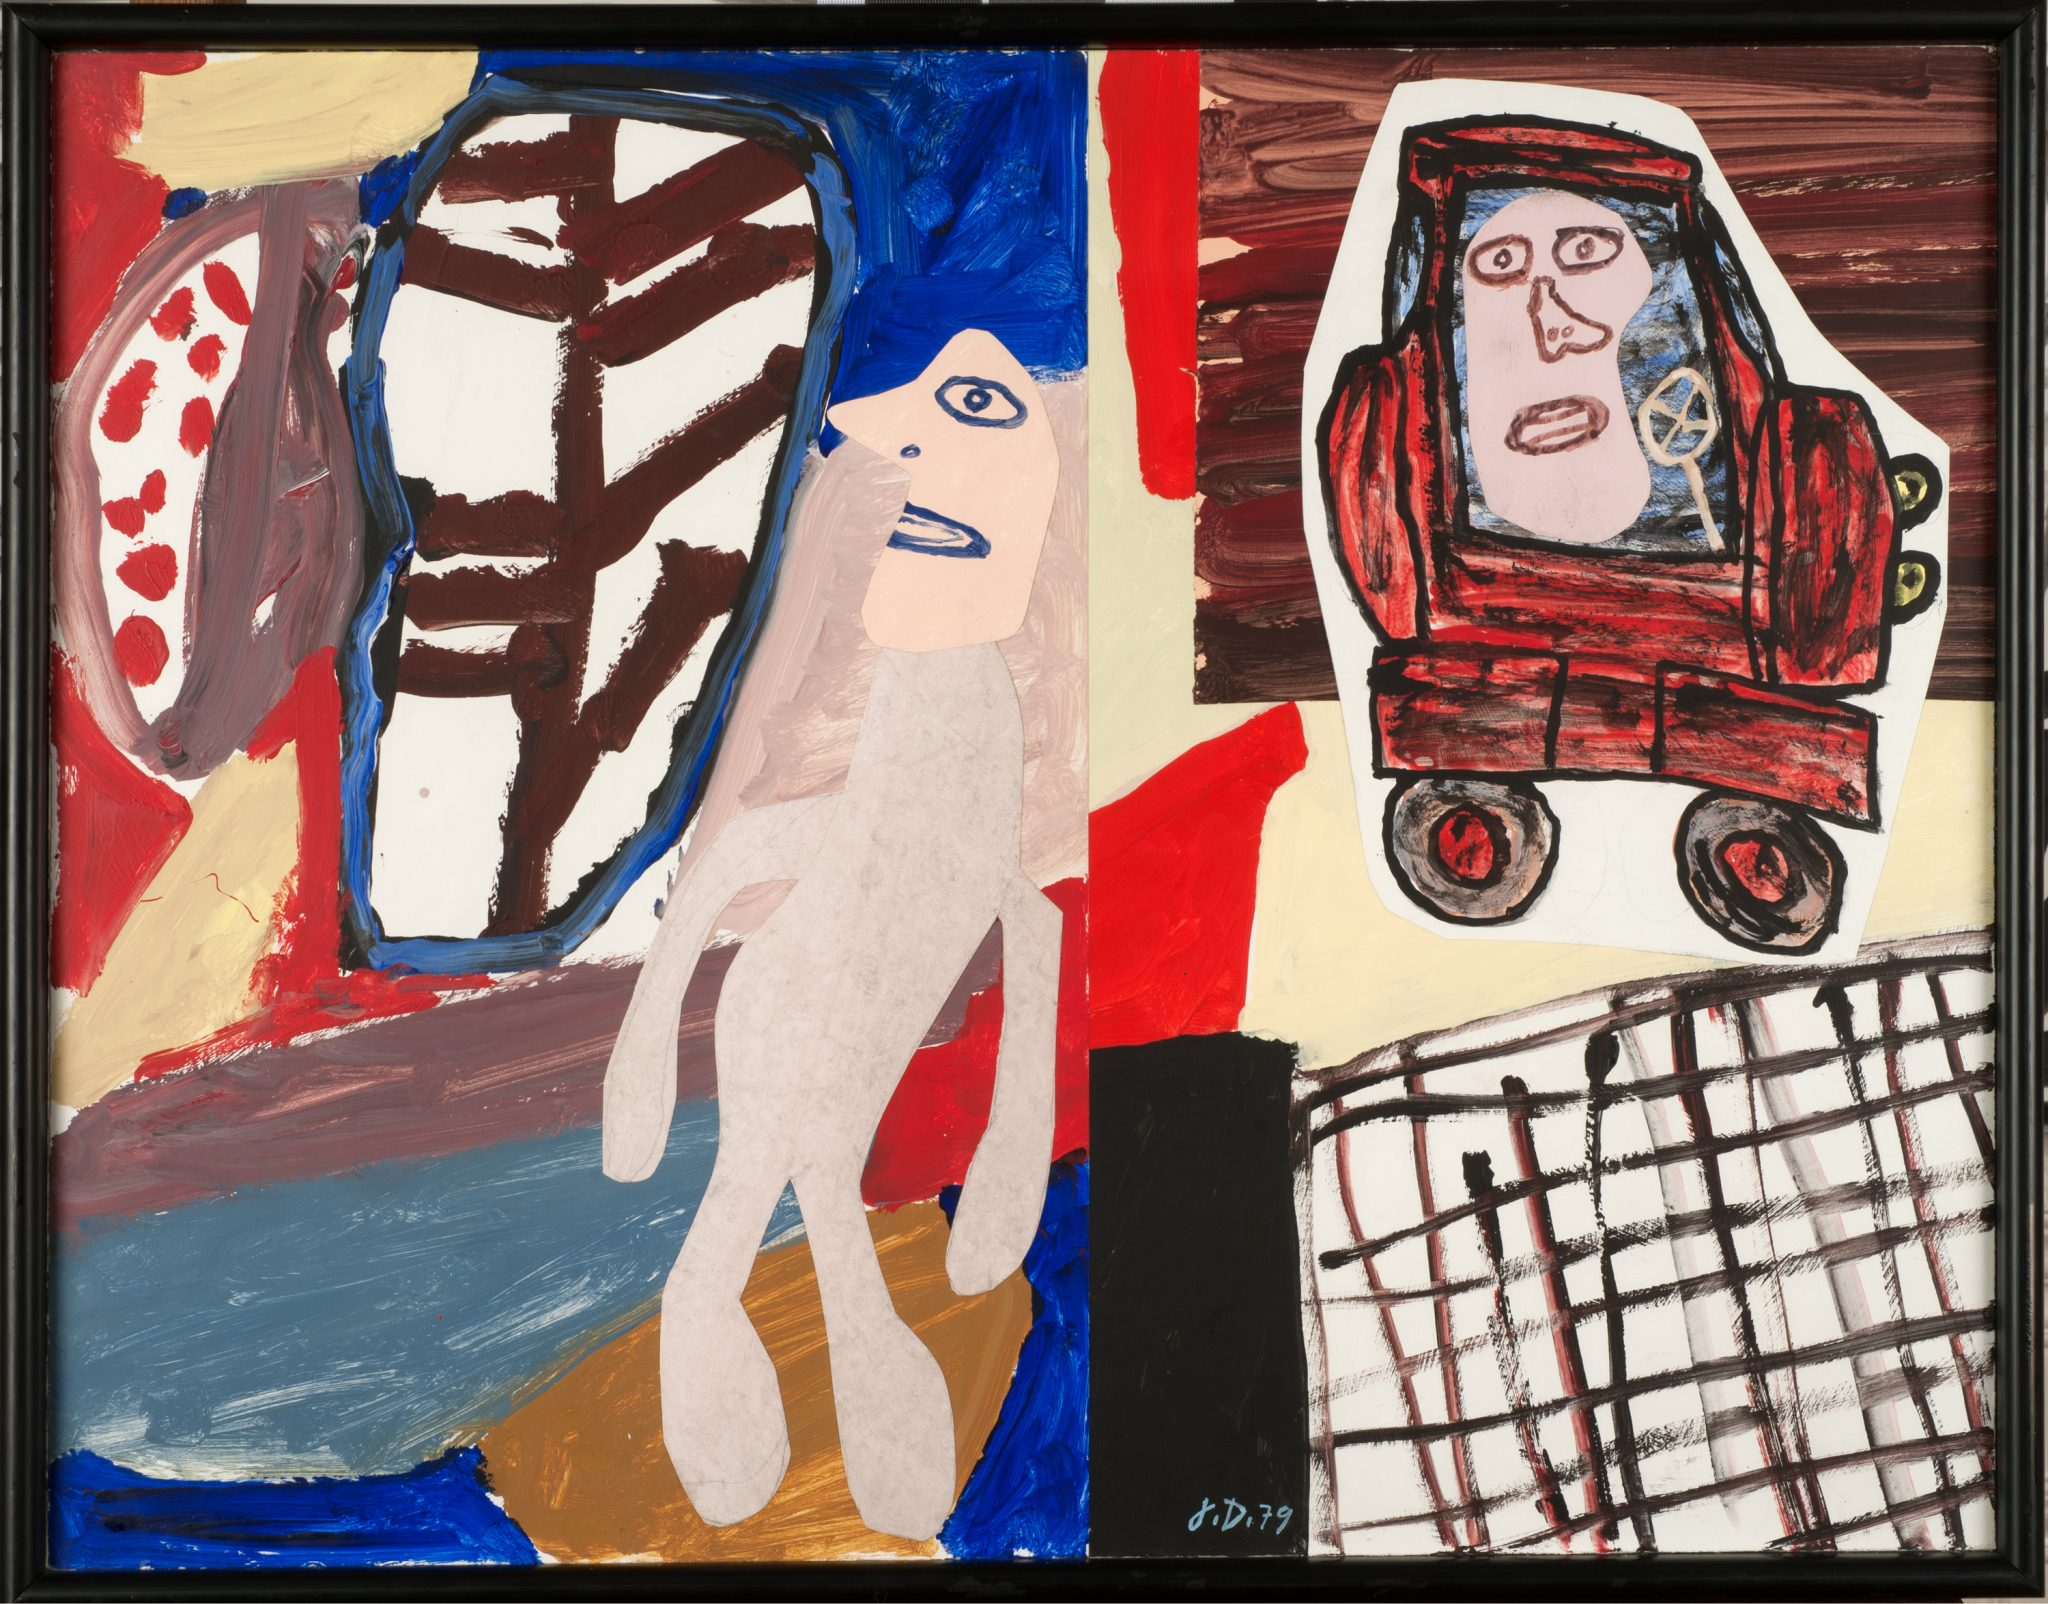 Jean Dubuffet Site avec auto, November 12, 1979 acrylic on canvas-backed paper (7 sections) © ADAGP, Paris and DACS, London 2017 FAD Magazine